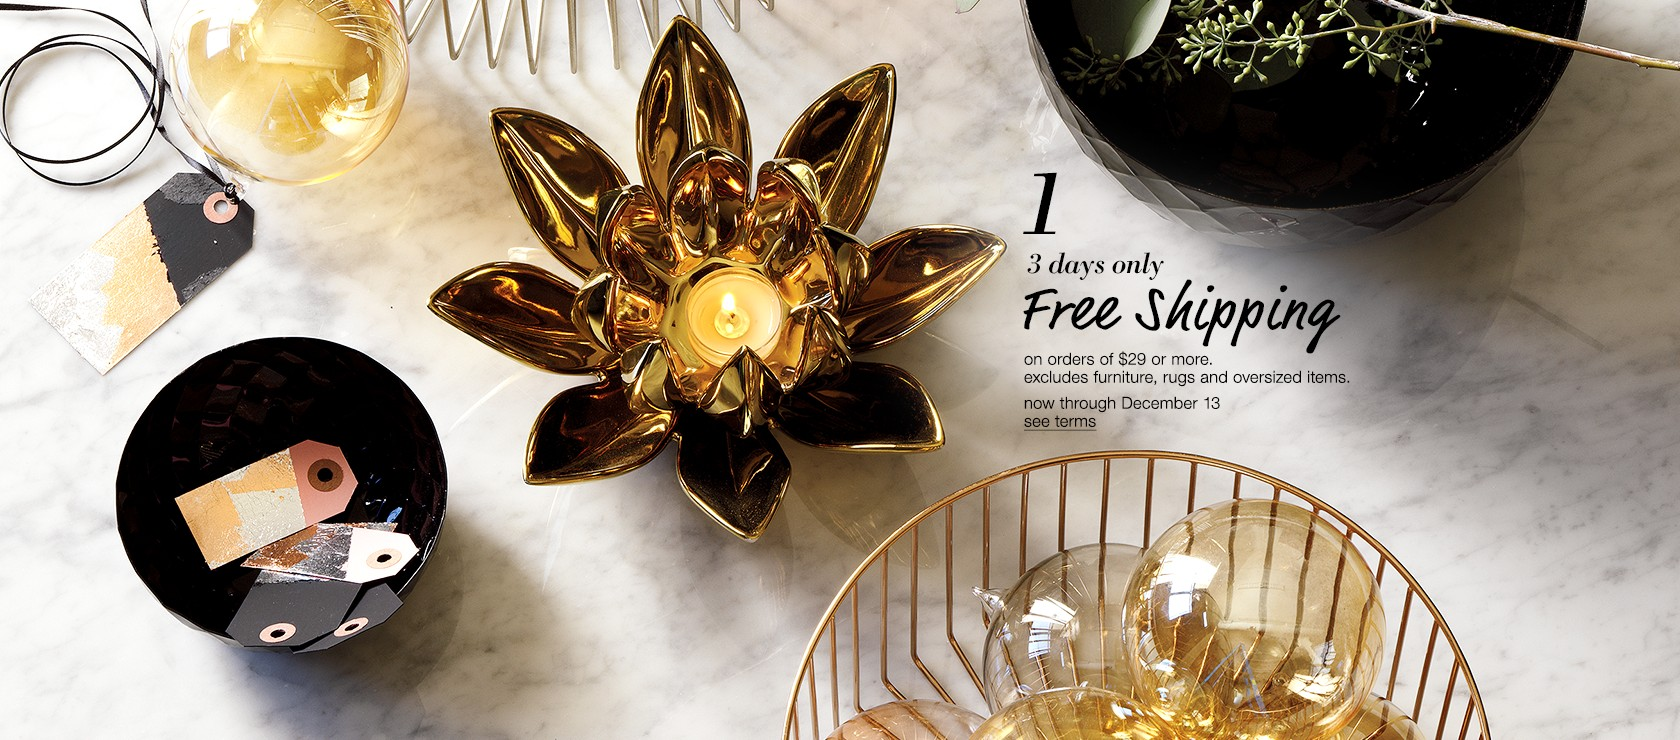 free shipping on orders of $29 or more.excludes furniture, rugs and oversized items.